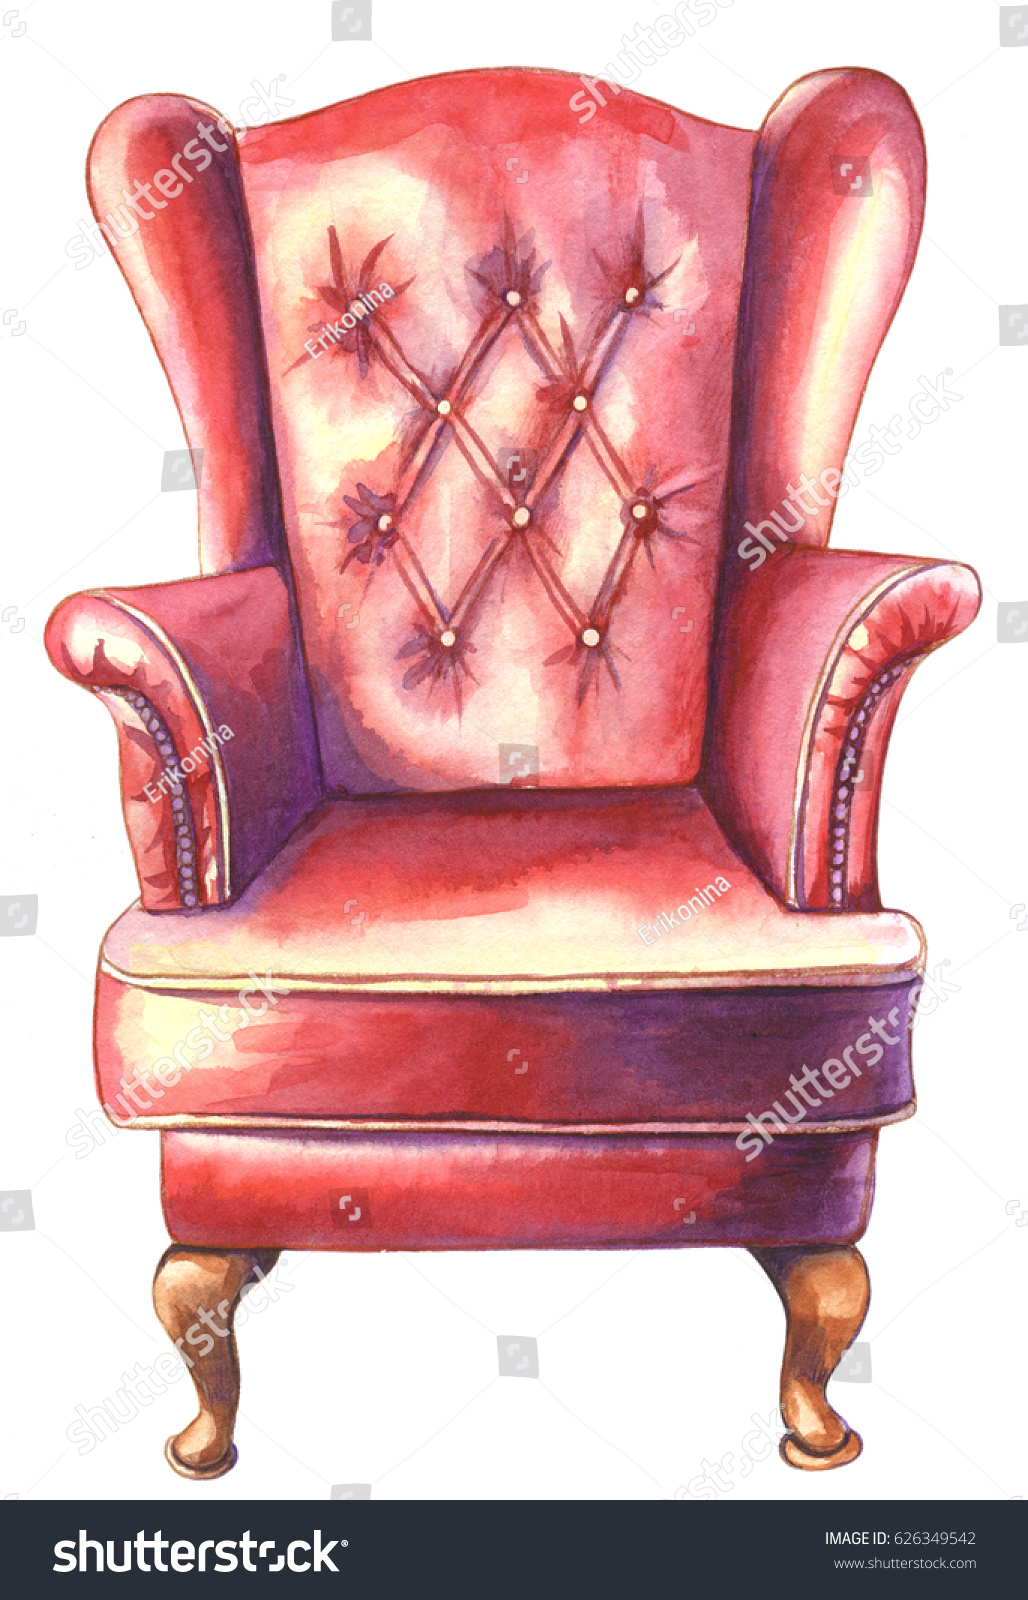 Watercolor Illustration Of Red Leather Armchair Modern Designer Armchair  Isolated On White Background.